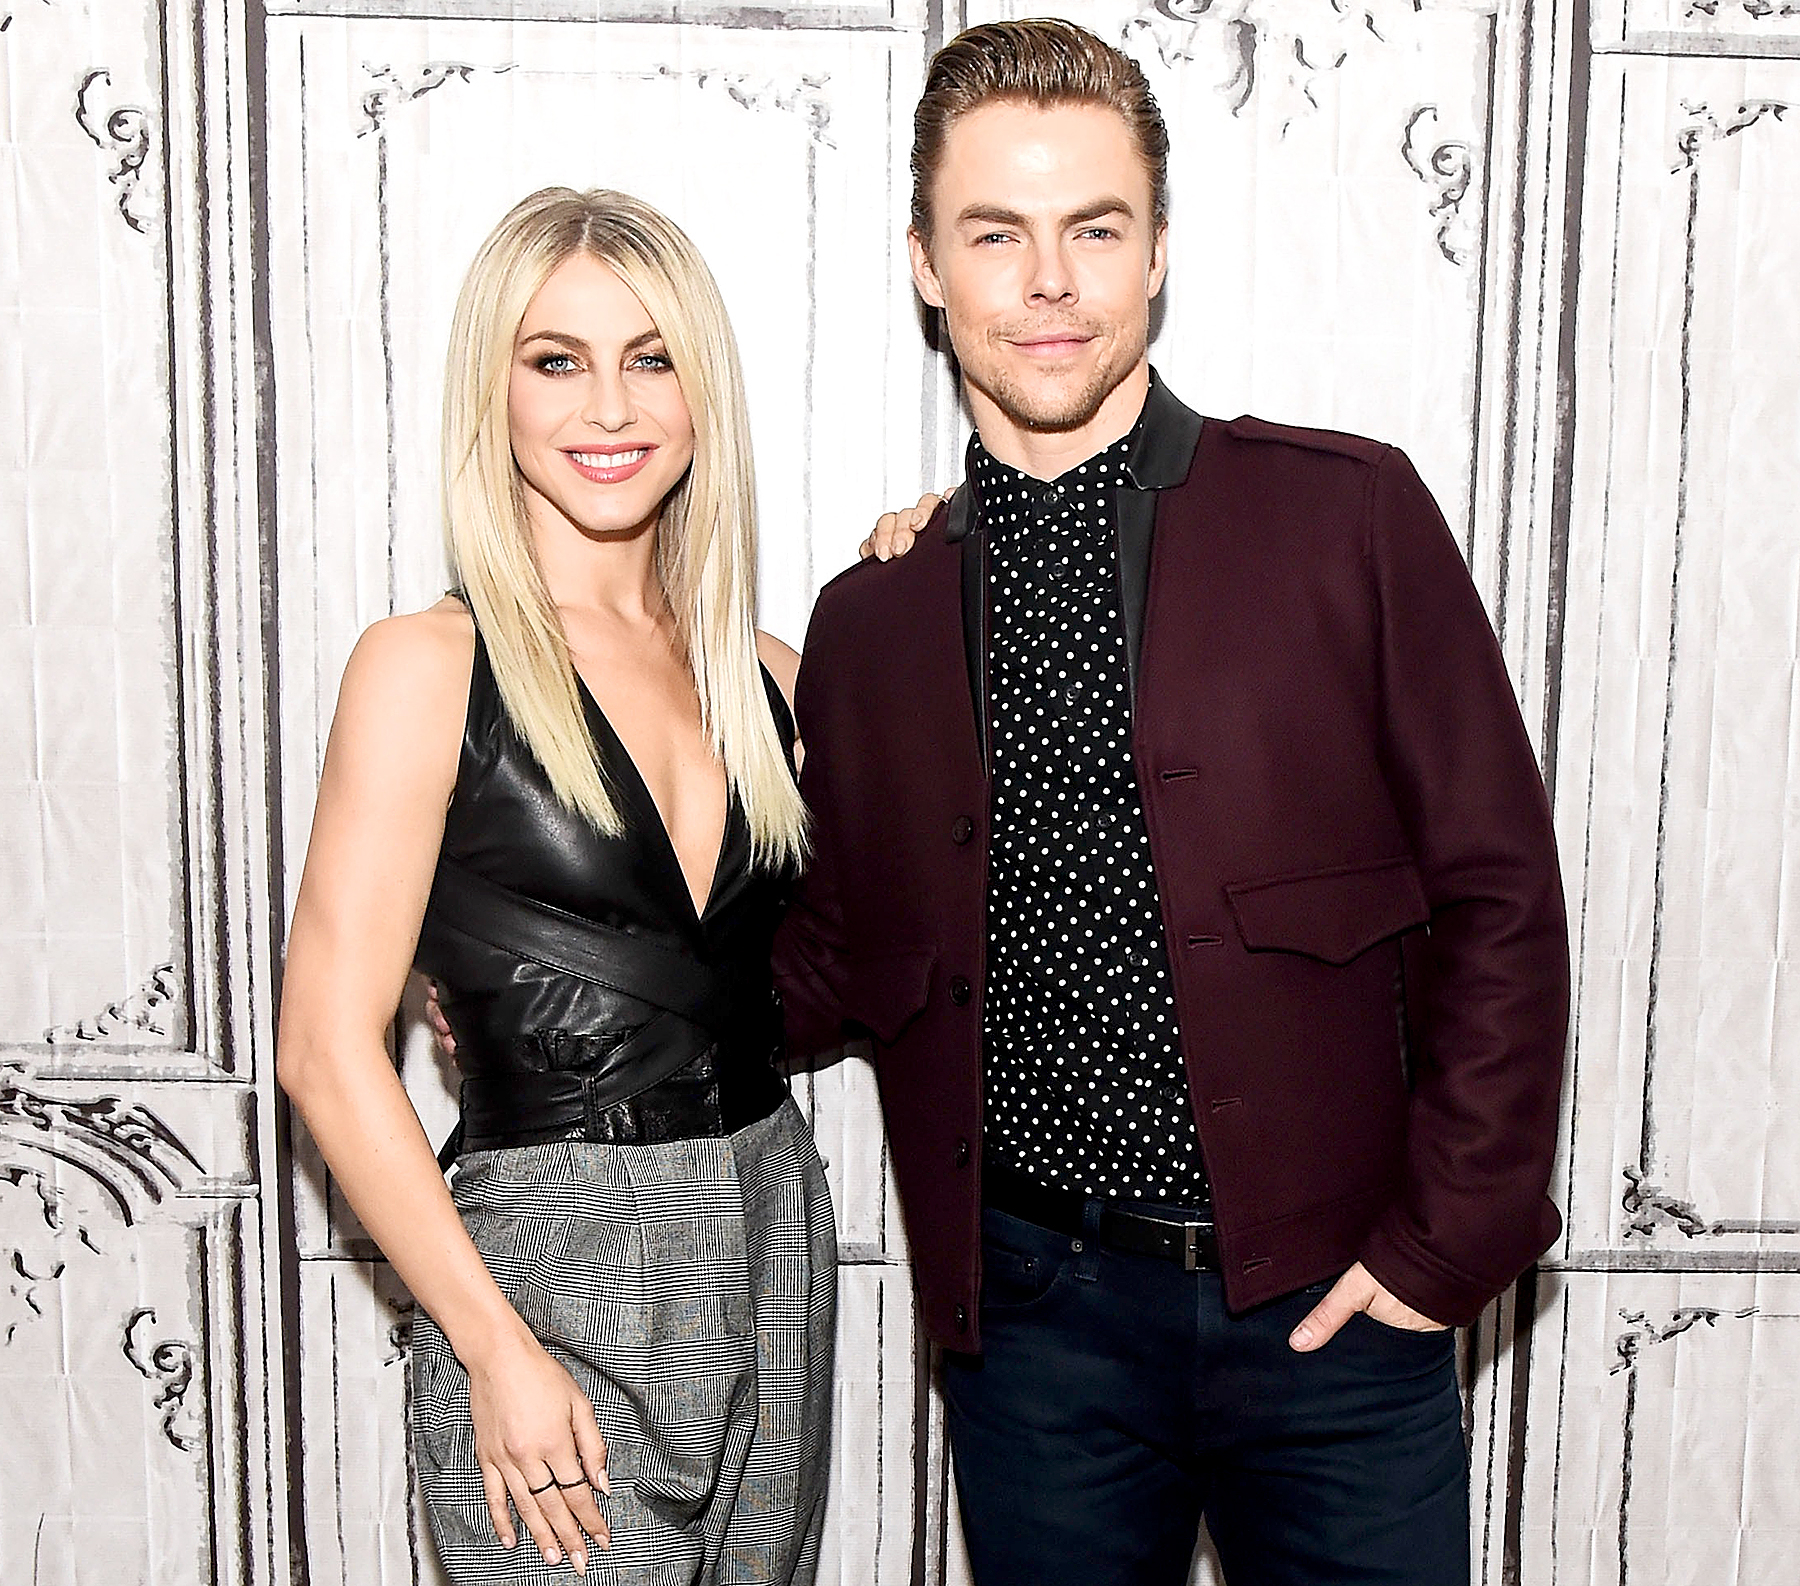 Julianne Hough and Derek Hough attend AOL Build to discuss the 'Move Live' Performance Tour at AOL HQ on December 14, 2016 in New York City.